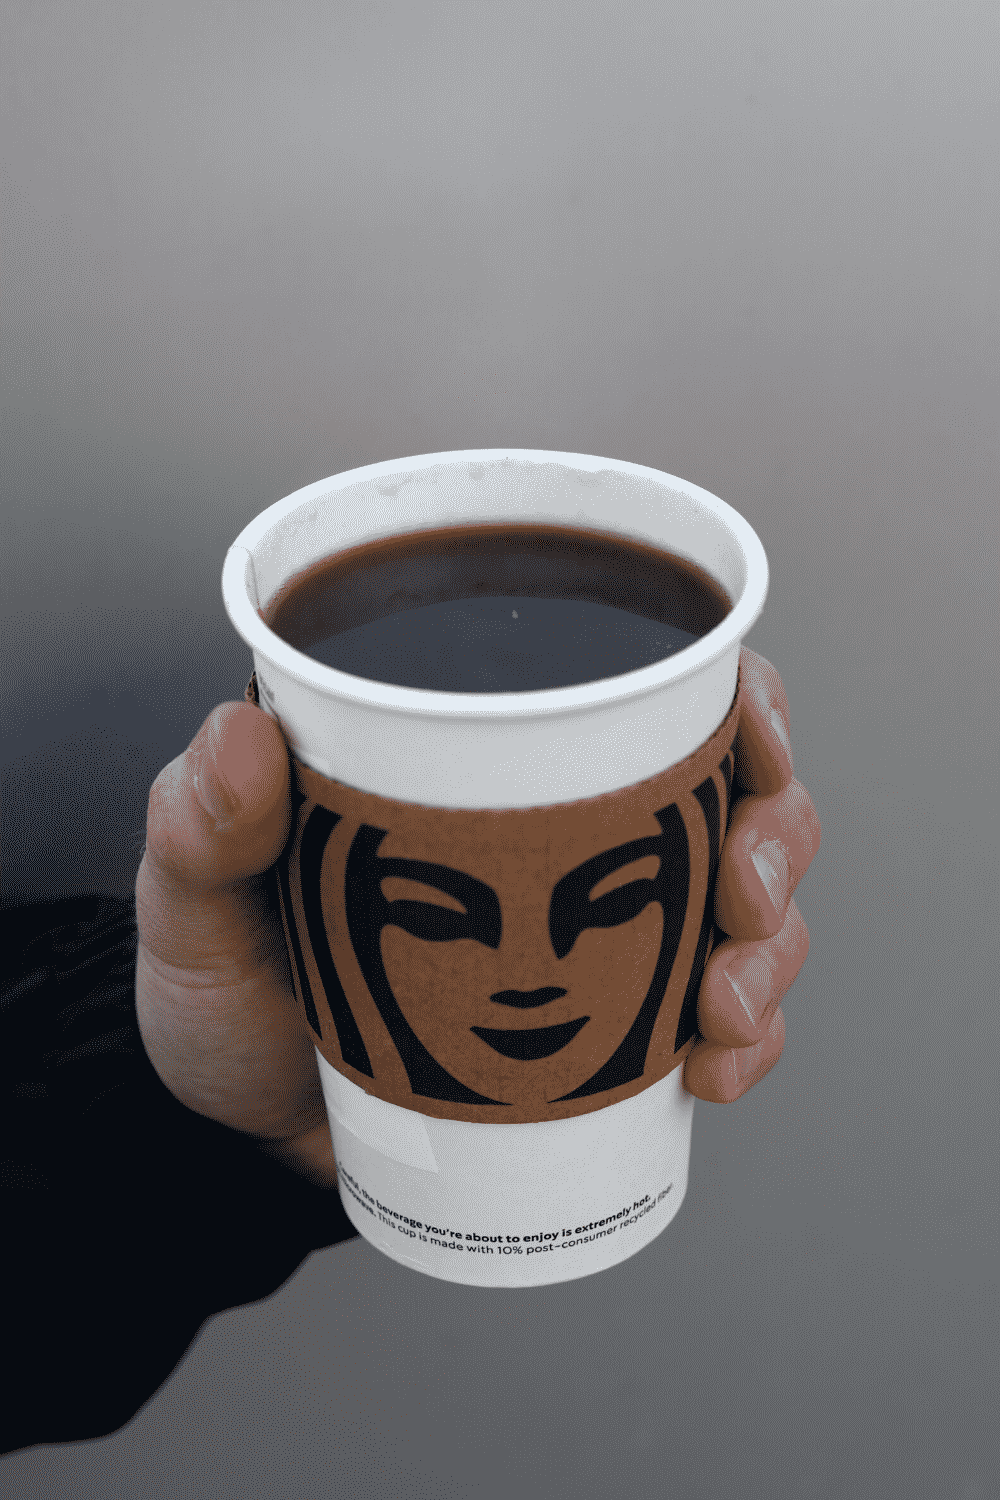 A hand holding a cup of Starbucks vegan caffe Americano